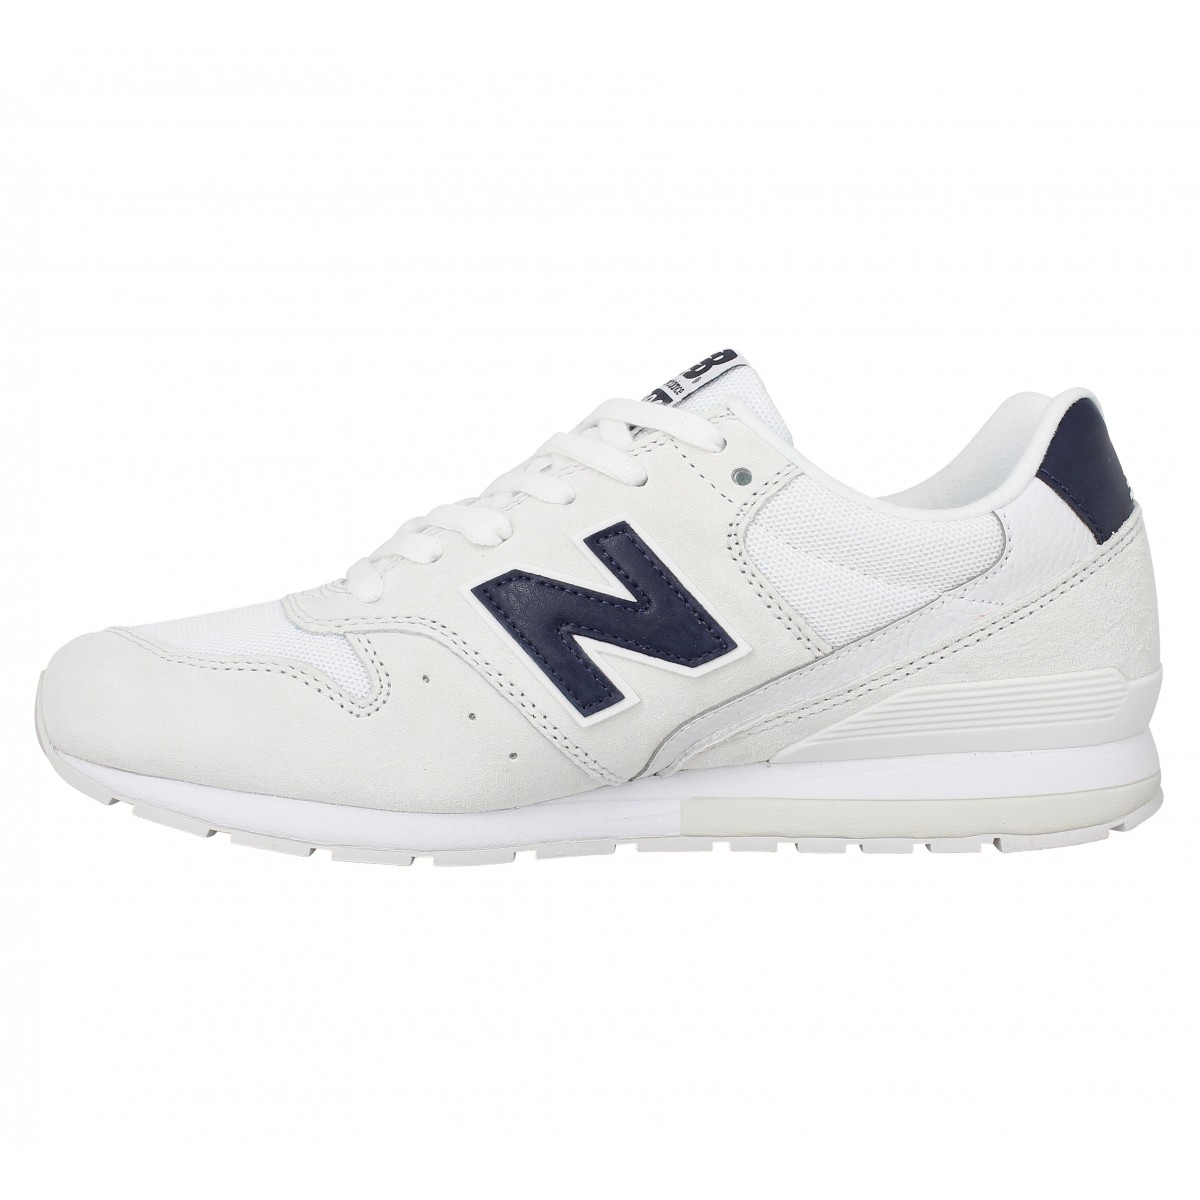 nb 996 homme blanche